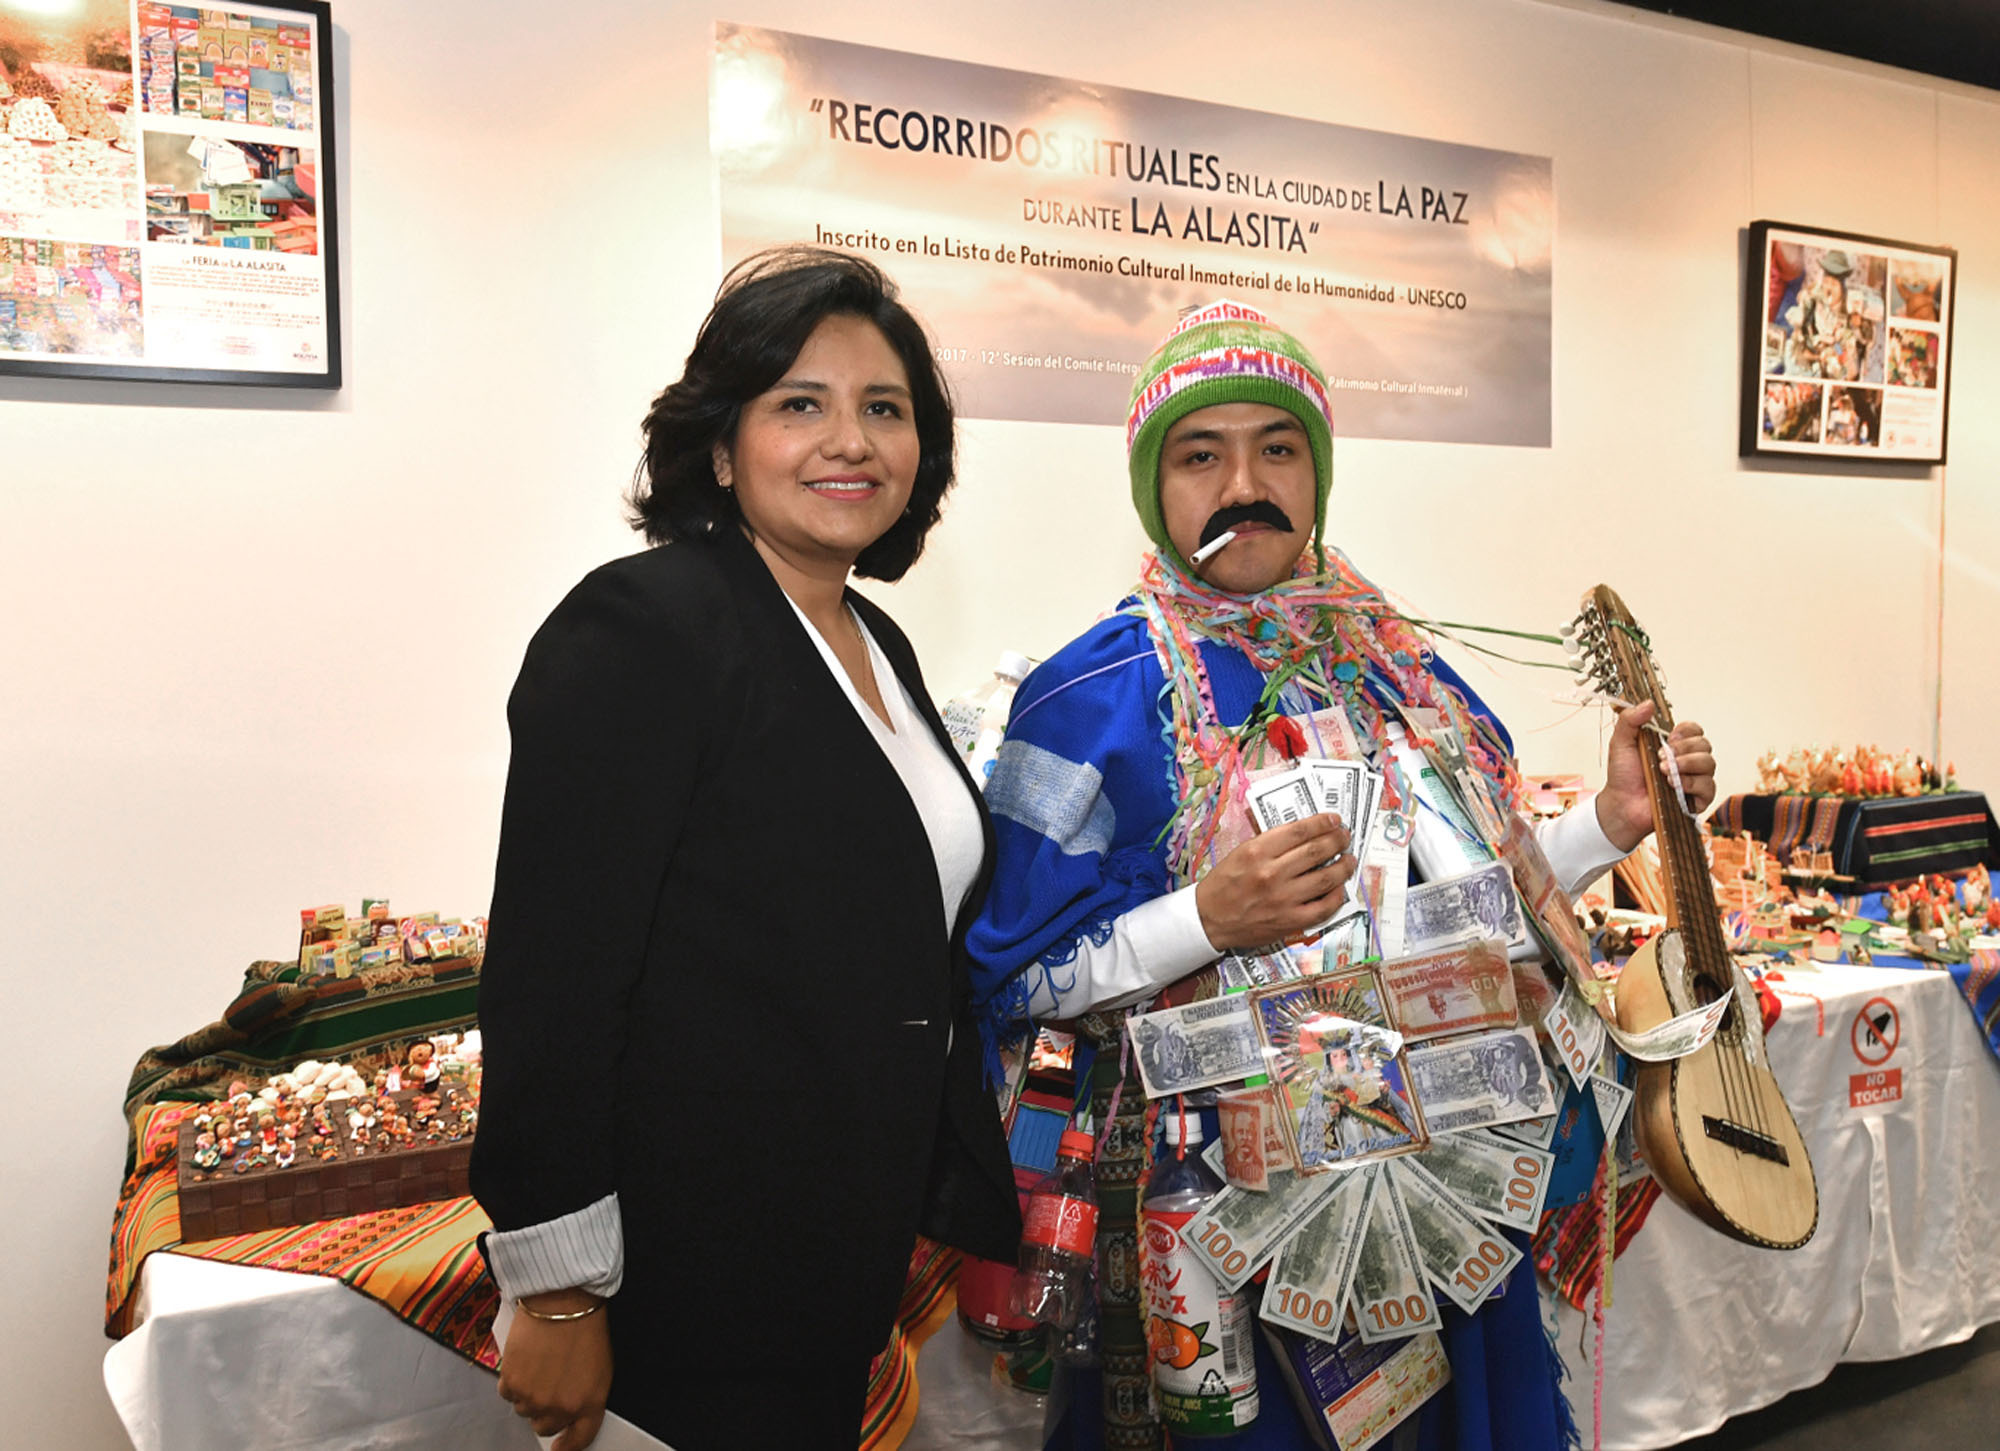 Angela Ayllon (left), charge d'affaires of Bolivia, poses for a photo next to a man dressed as El Ekeko, a god of luck and prosperity, during the opening ceremony of an exhibition being held at the Cervantes Institute to mark the nomination of the ritual journeys in La Paz during Alasita to UNESCO's Intangible Cultural Heritage list. |  YOSHIAKI MIURA